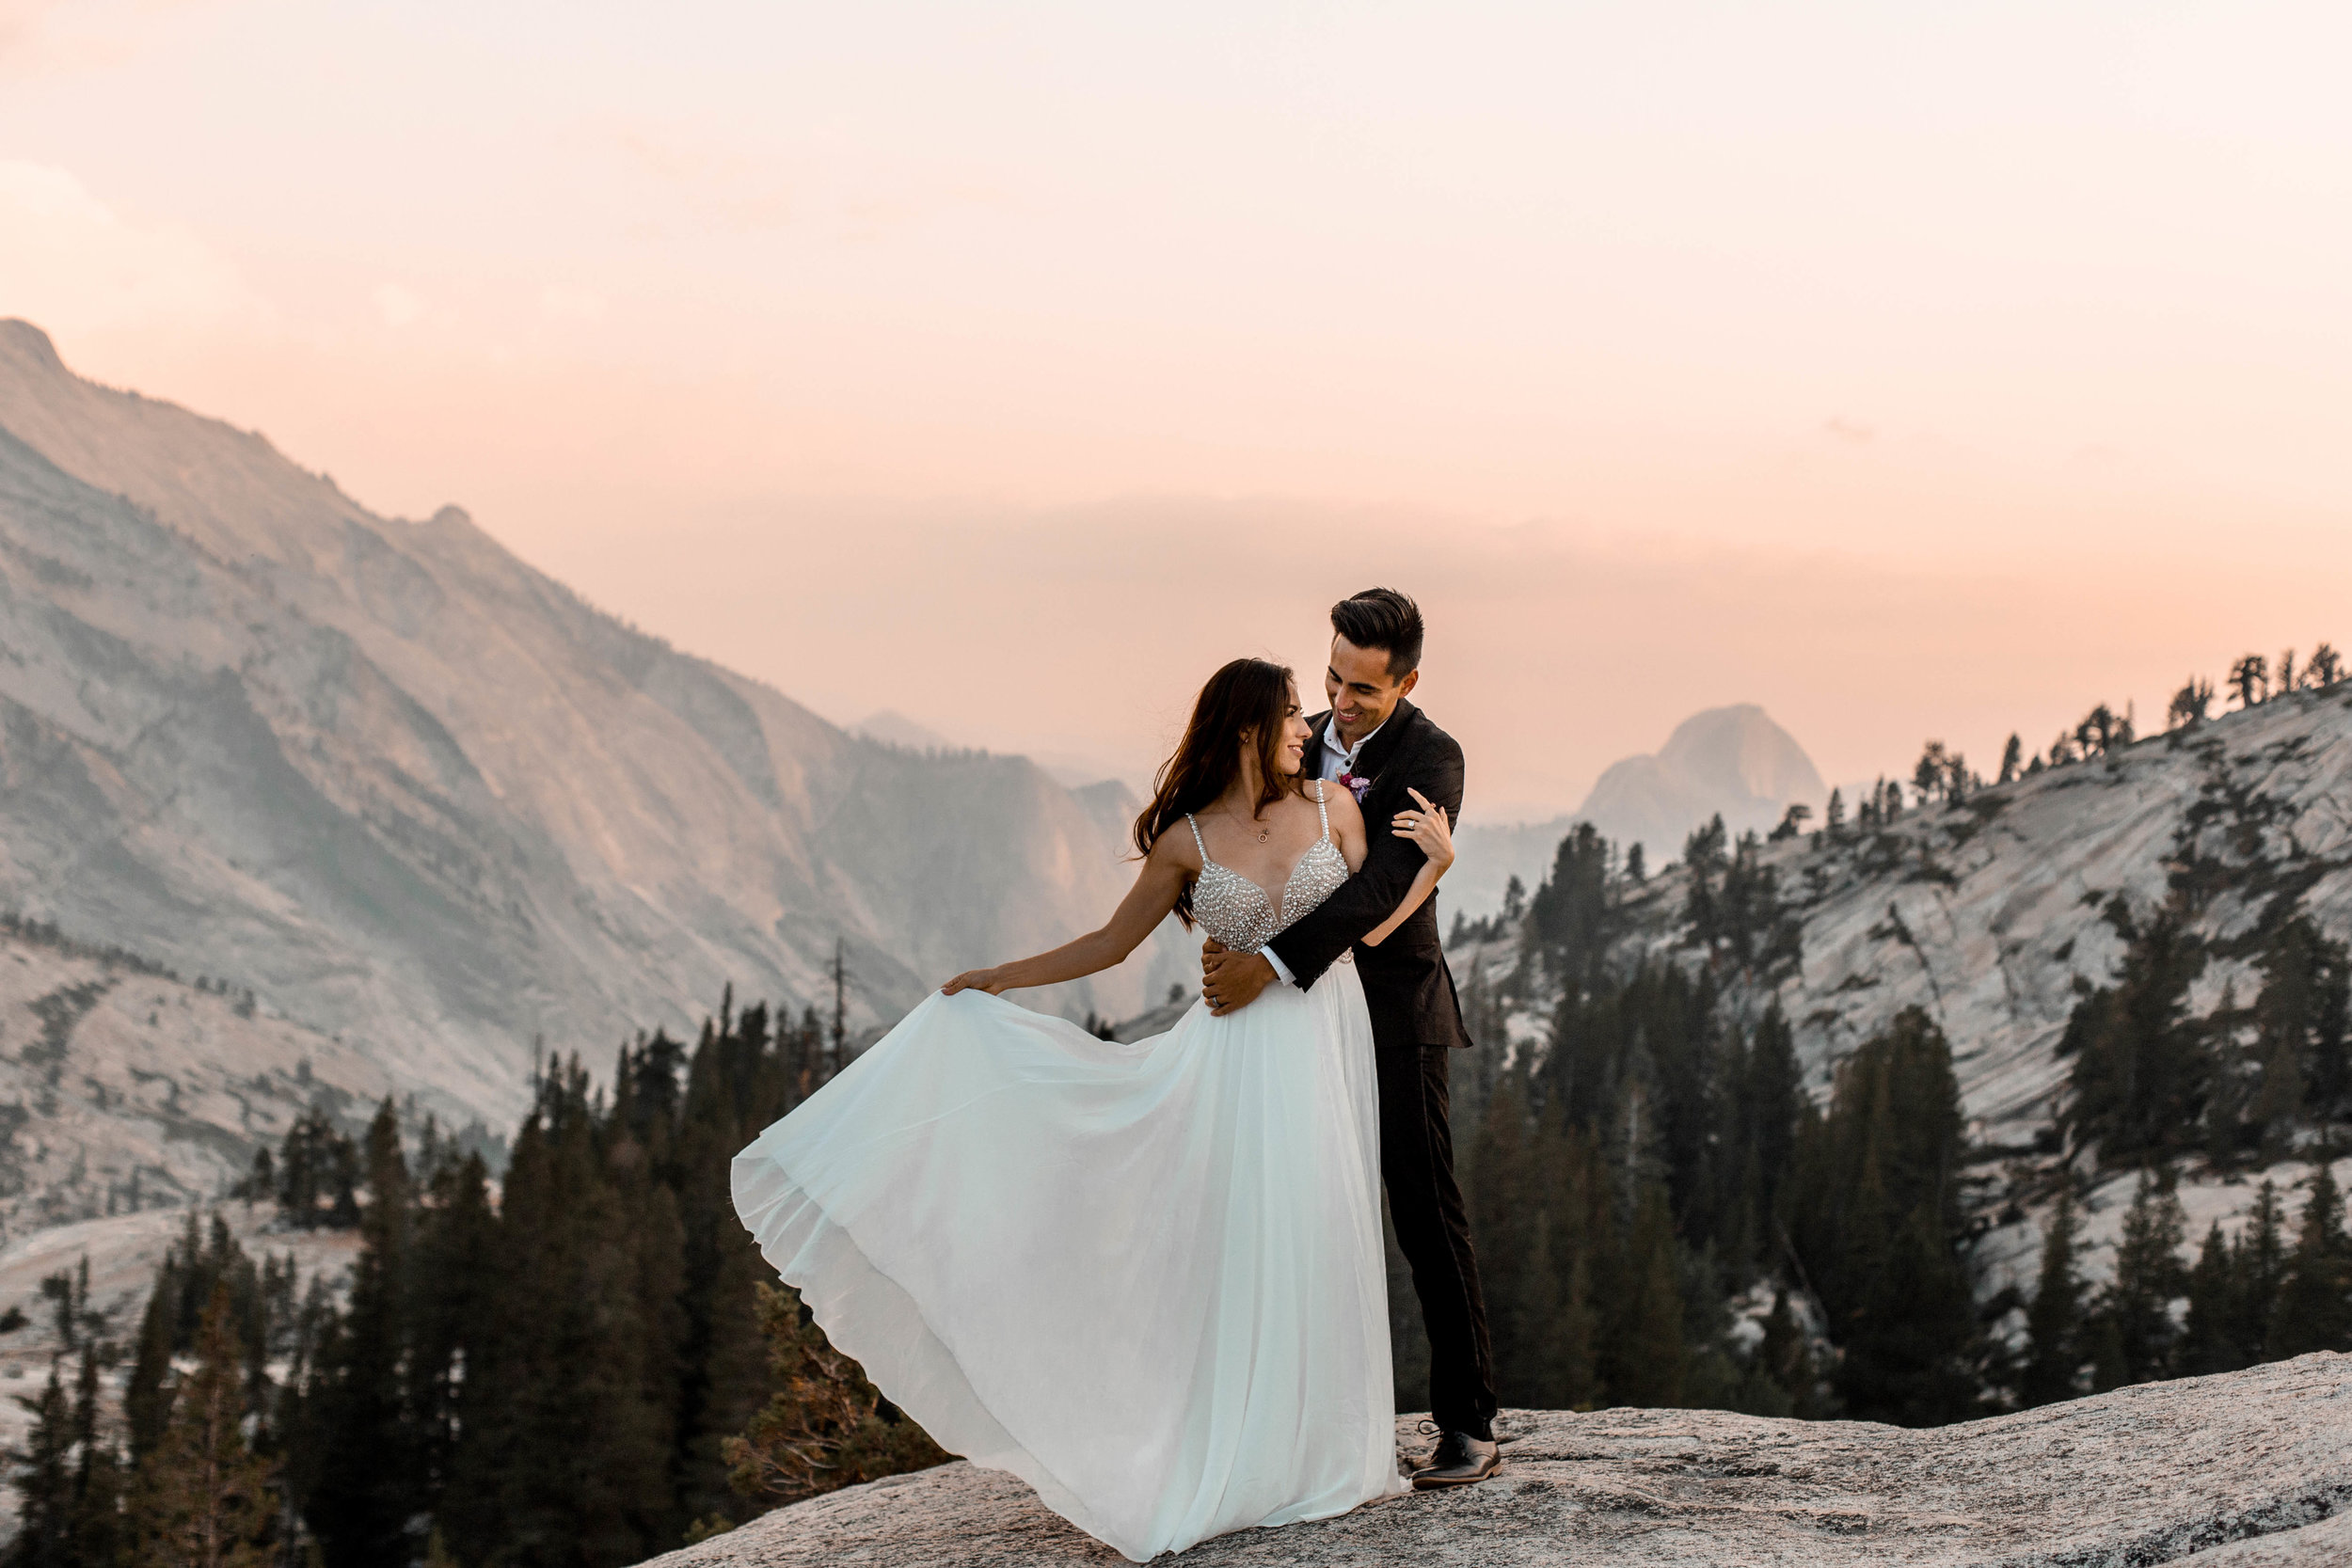 nicole-daacke-photography-yosemite-national-park-wedding-sunset-elopement-olmstead-point-yosemite-adventure-wedding-photographer-adventurous-elopement-destination-wedding-national-park-wedding-photography-1745.jpg